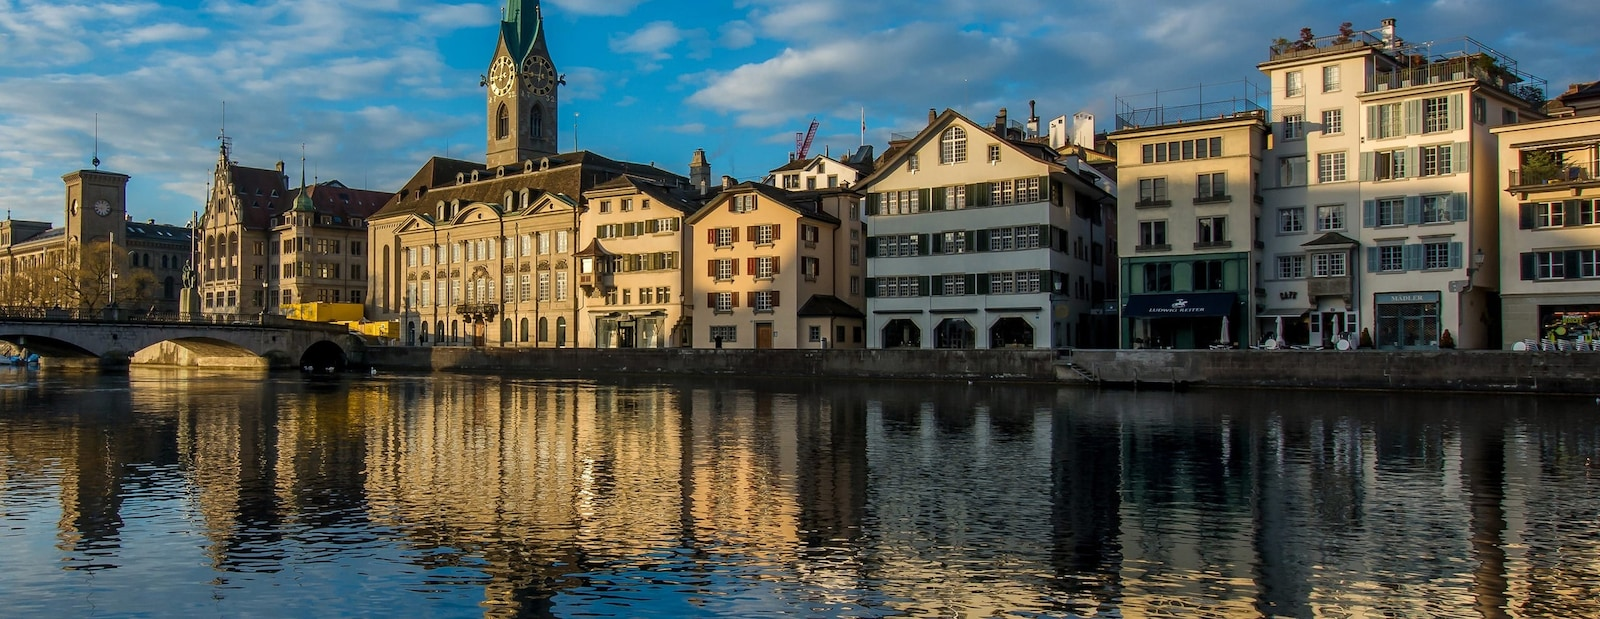 Vacation rentals in Zurich